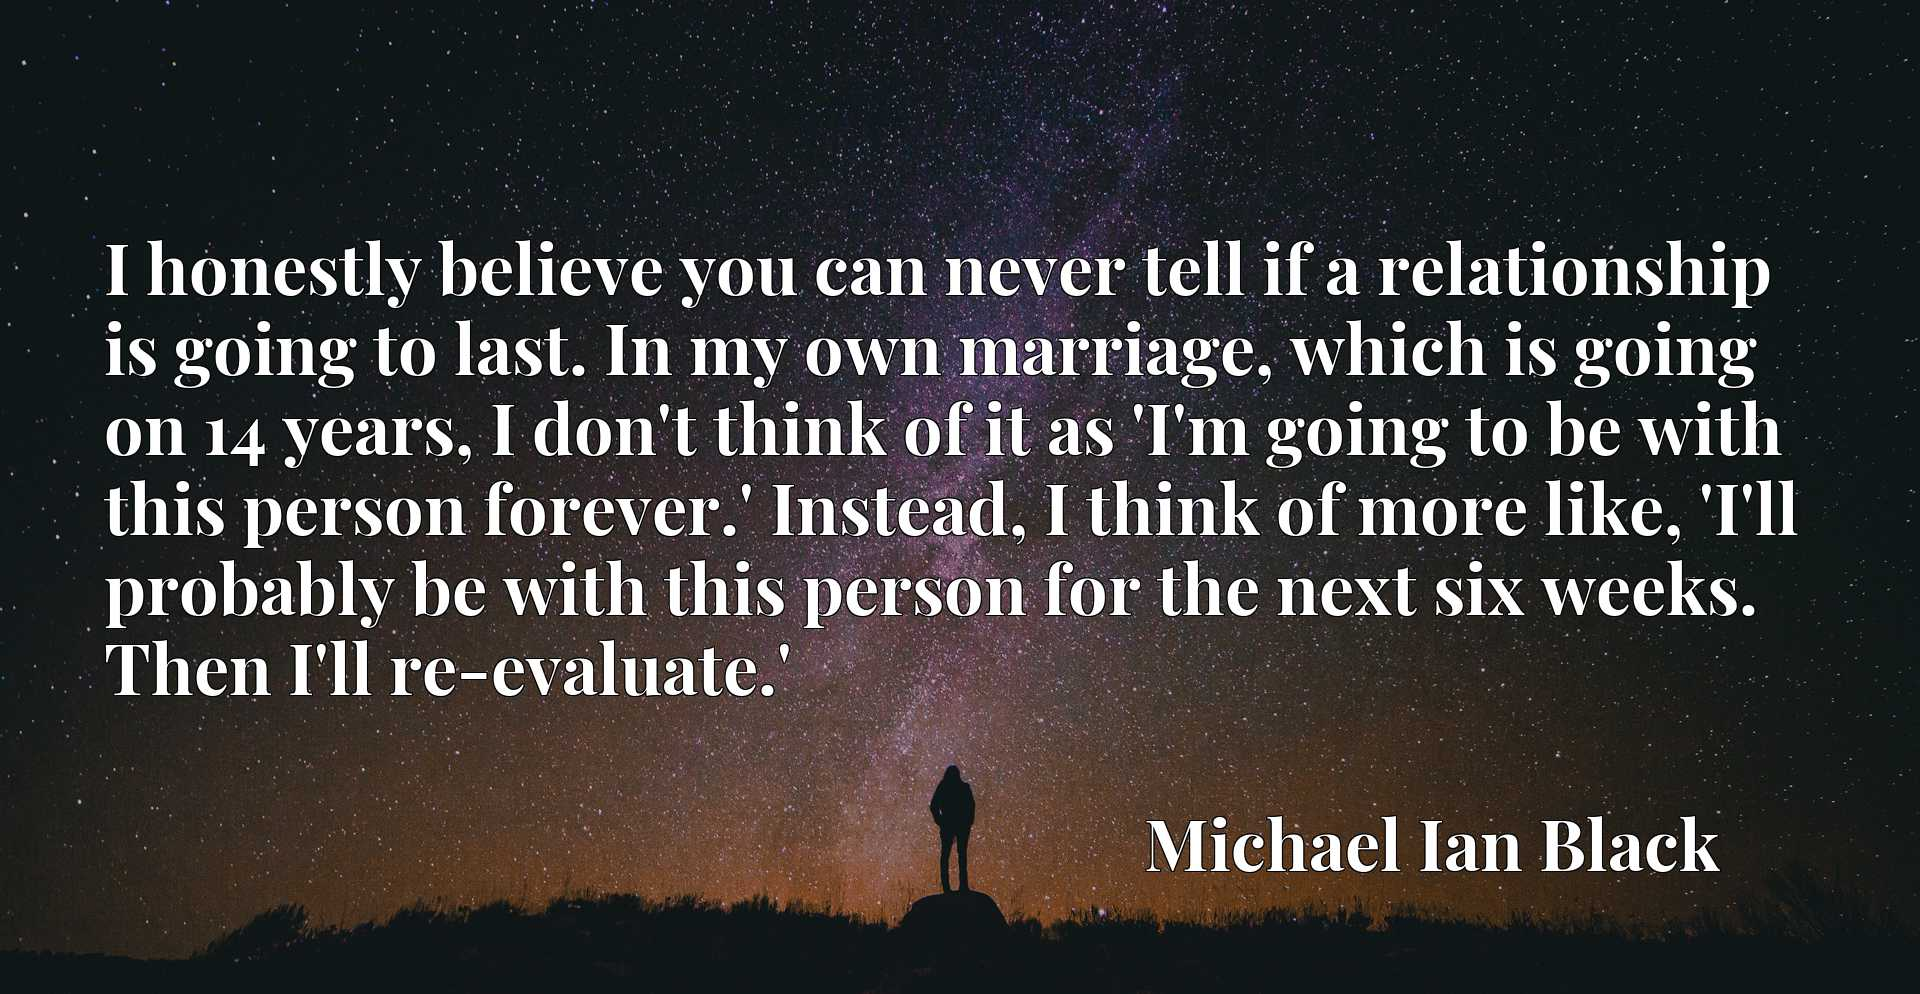 I honestly believe you can never tell if a relationship is going to last. In my own marriage, which is going on 14 years, I don't think of it as 'I'm going to be with this person forever.' Instead, I think of more like, 'I'll probably be with this person for the next six weeks. Then I'll re-evaluate.'